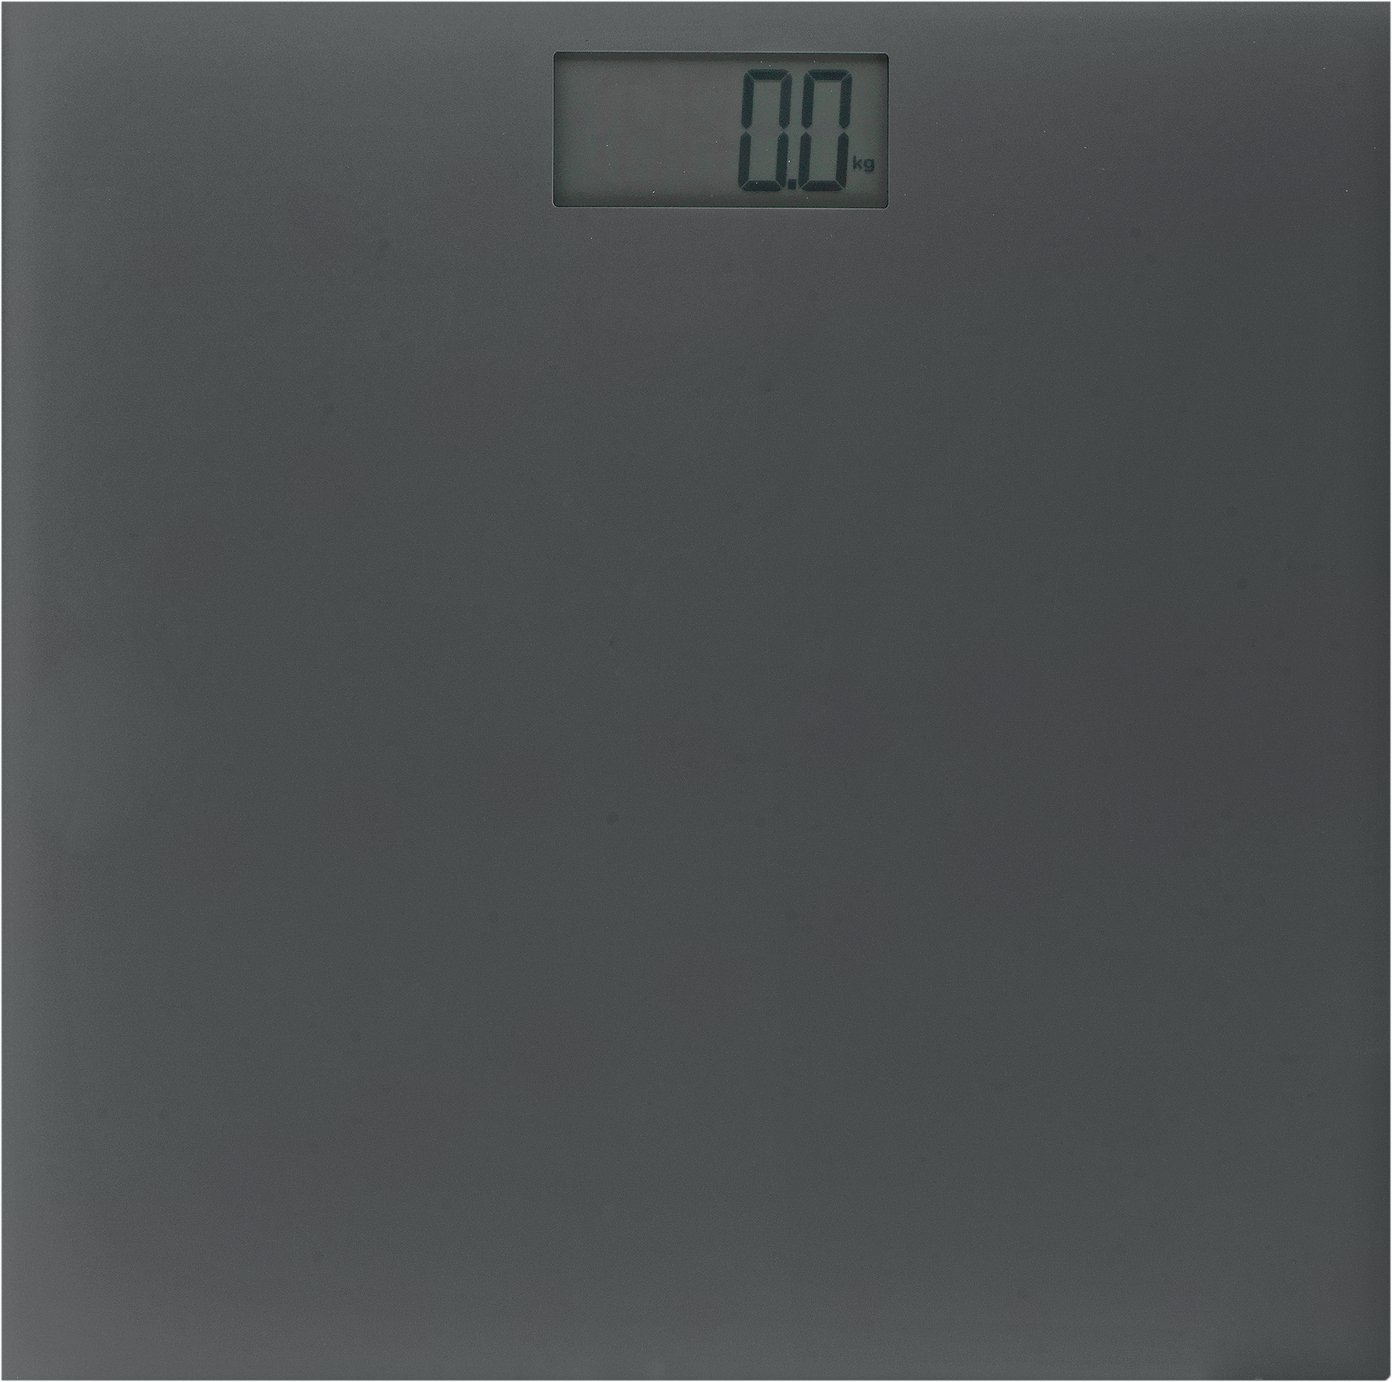 ColourMatch by Argos Electronic Scales - Jet Black